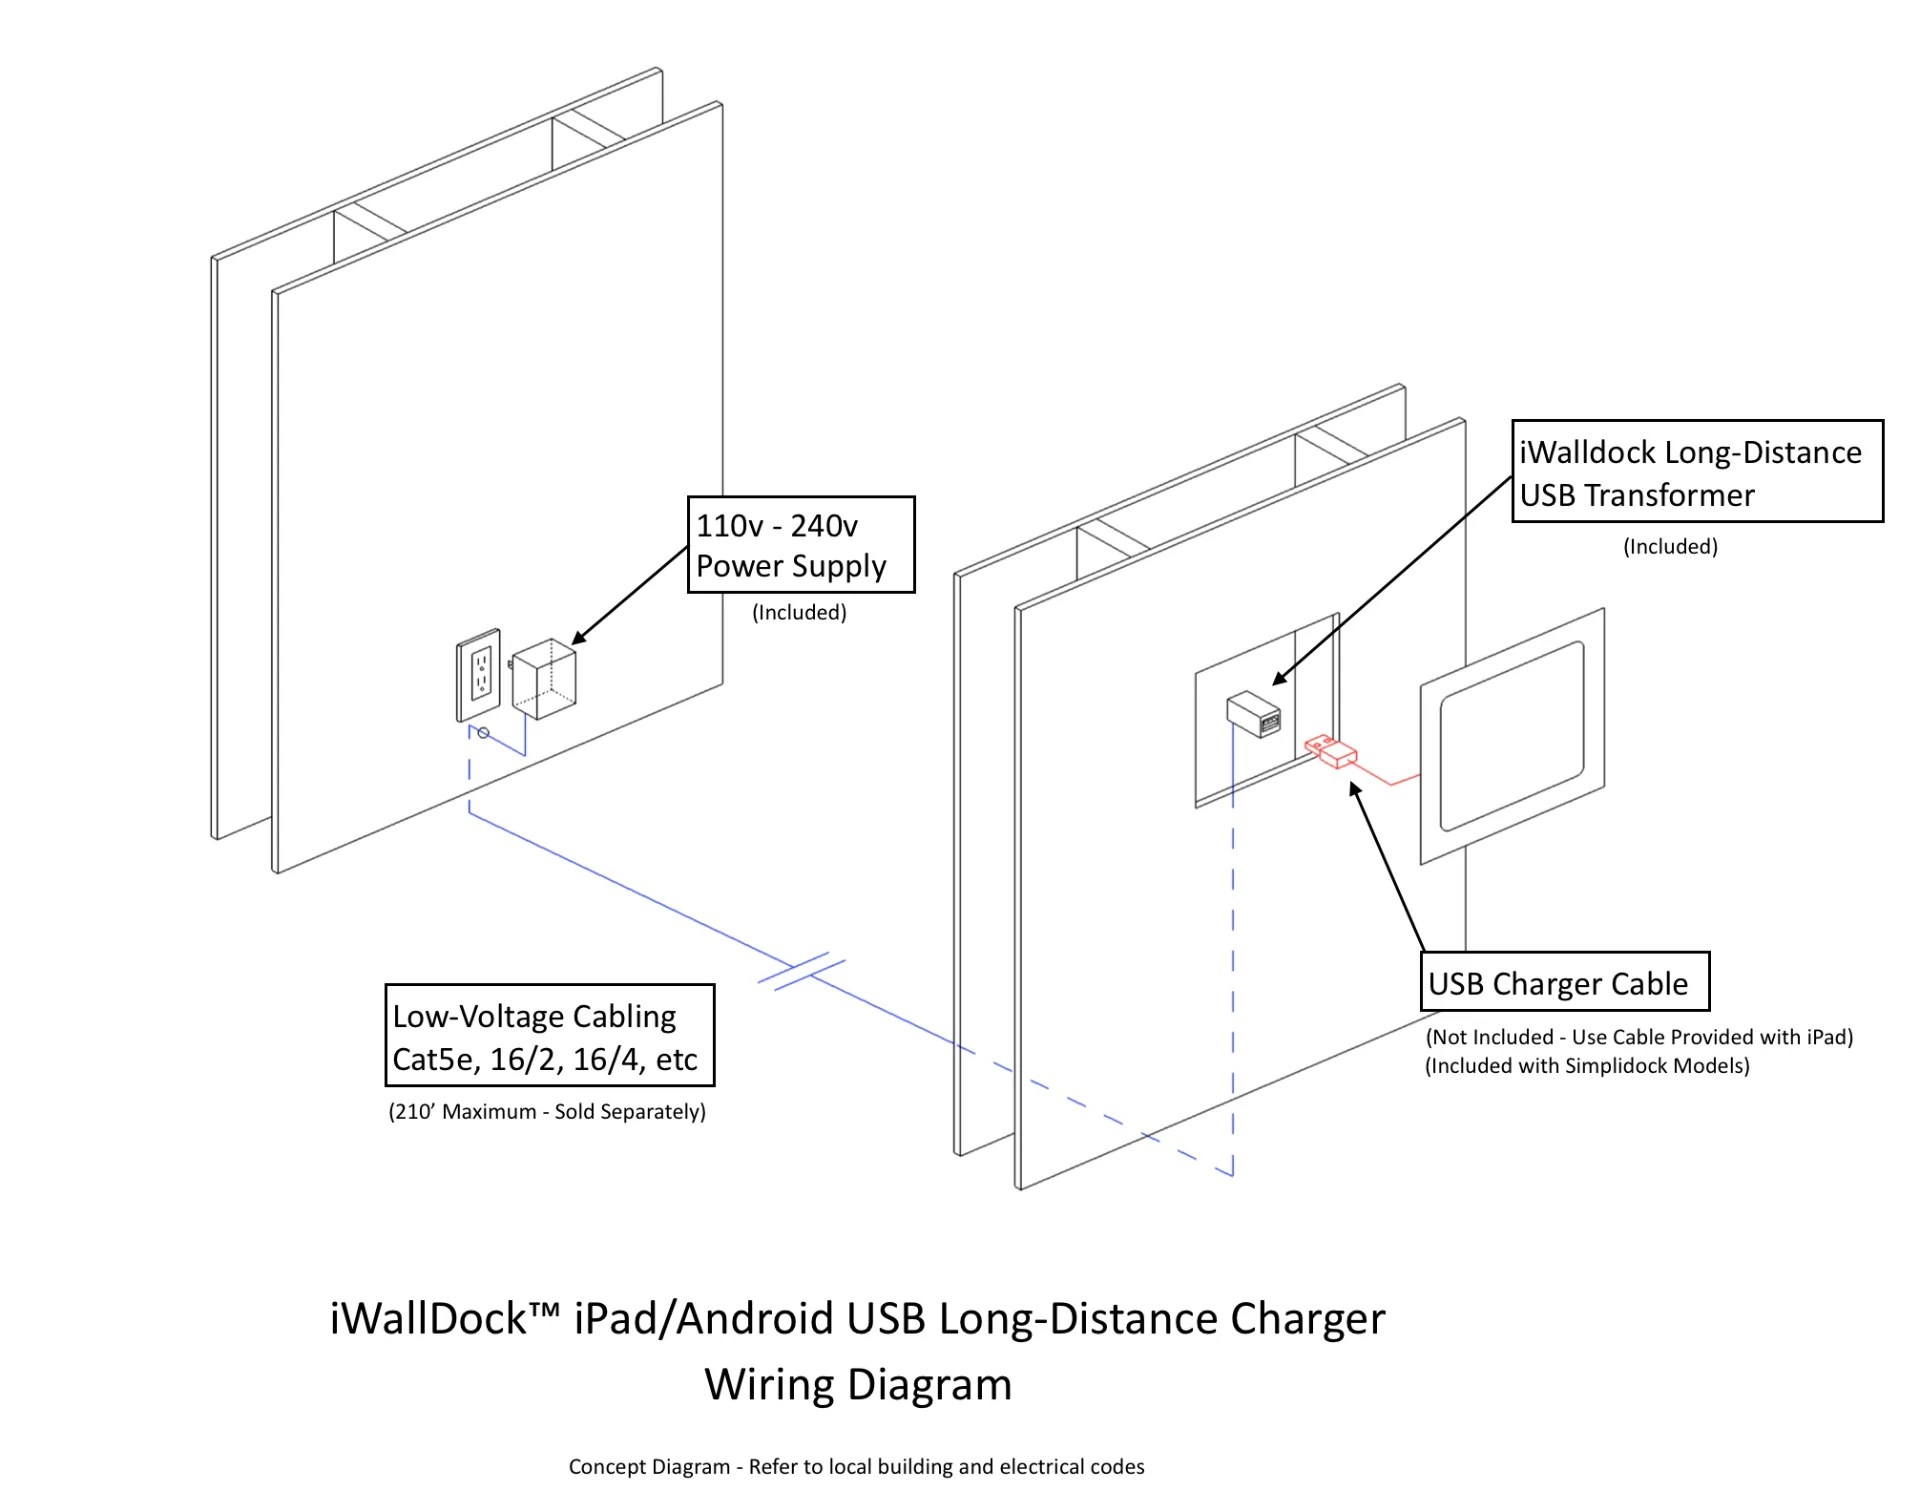 iwalldock 2 wire usb charging kit in wall tablet mount dock [ 1920 x 1491 Pixel ]